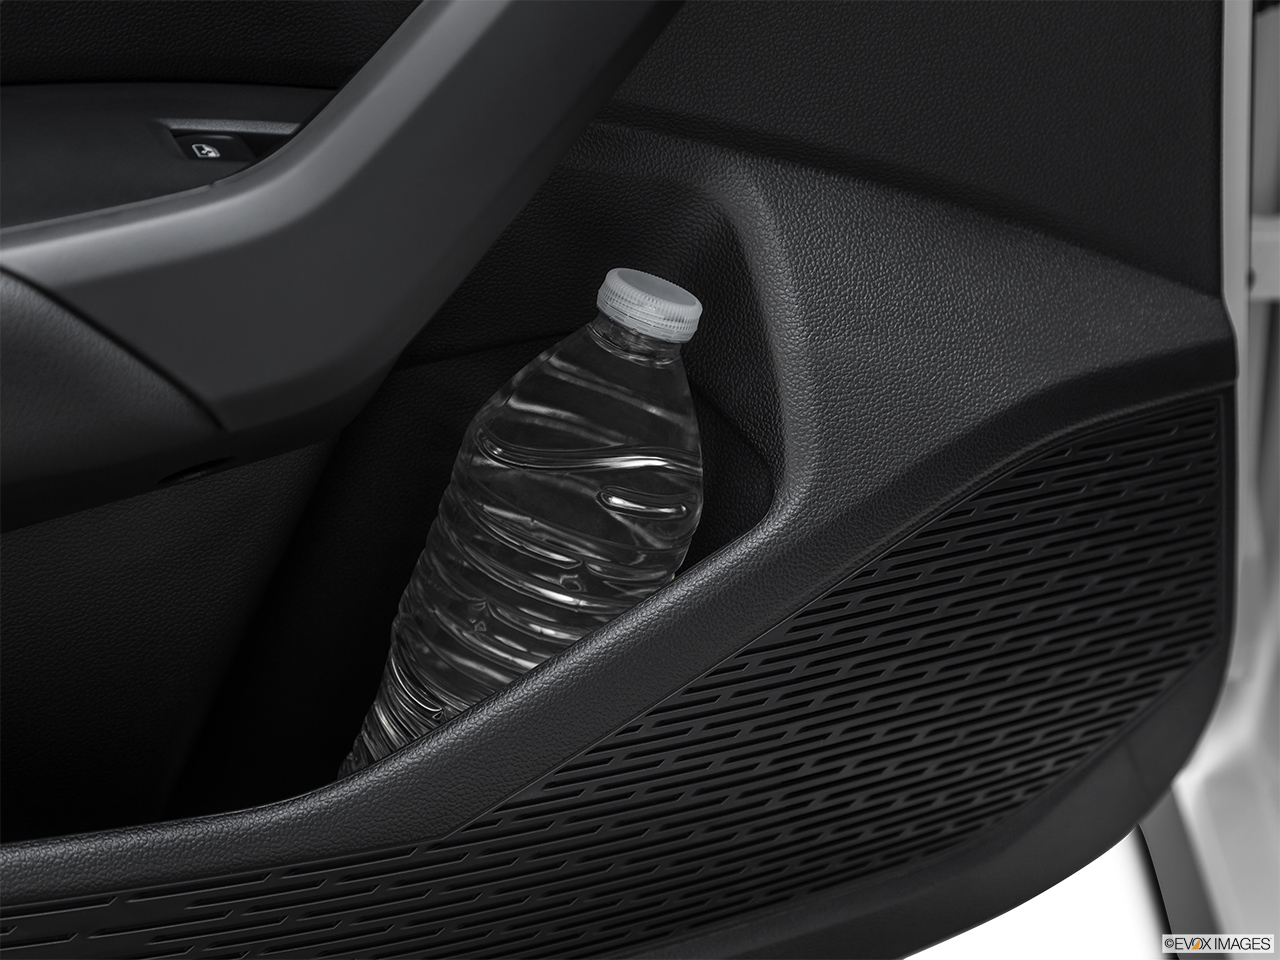 2019 Volkswagen Jetta GLI S Second row side cup holder with coffee prop, or second row door cup holder with water bottle.